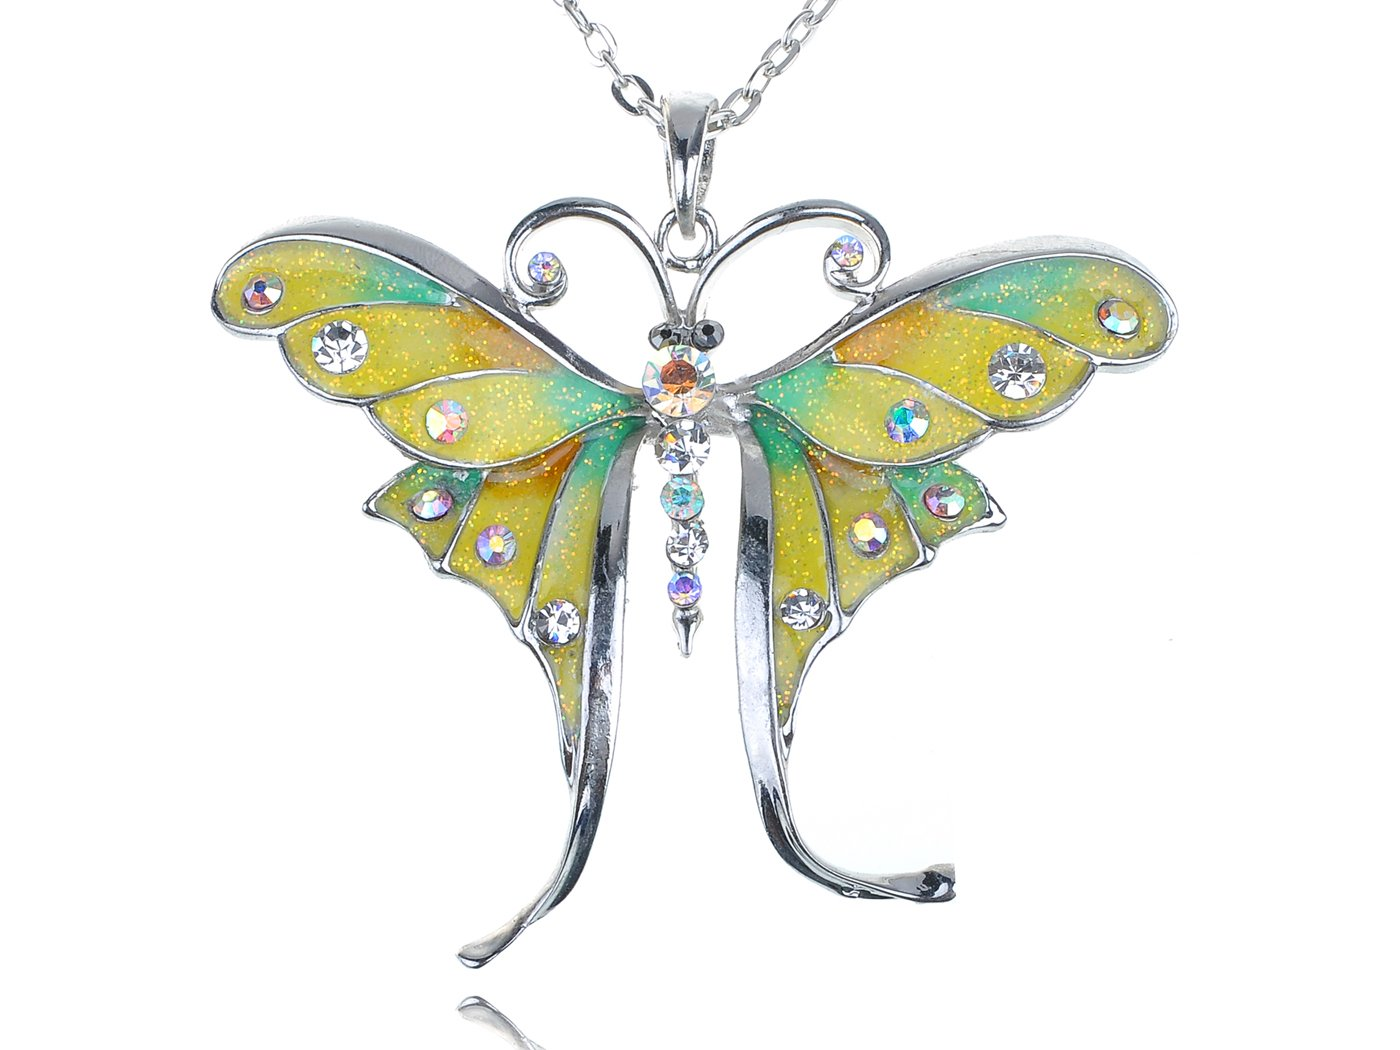 Alilang Yellow Enamel Painted Crystal Rhinestone Butterfly Dragonfly Pendant Necklace